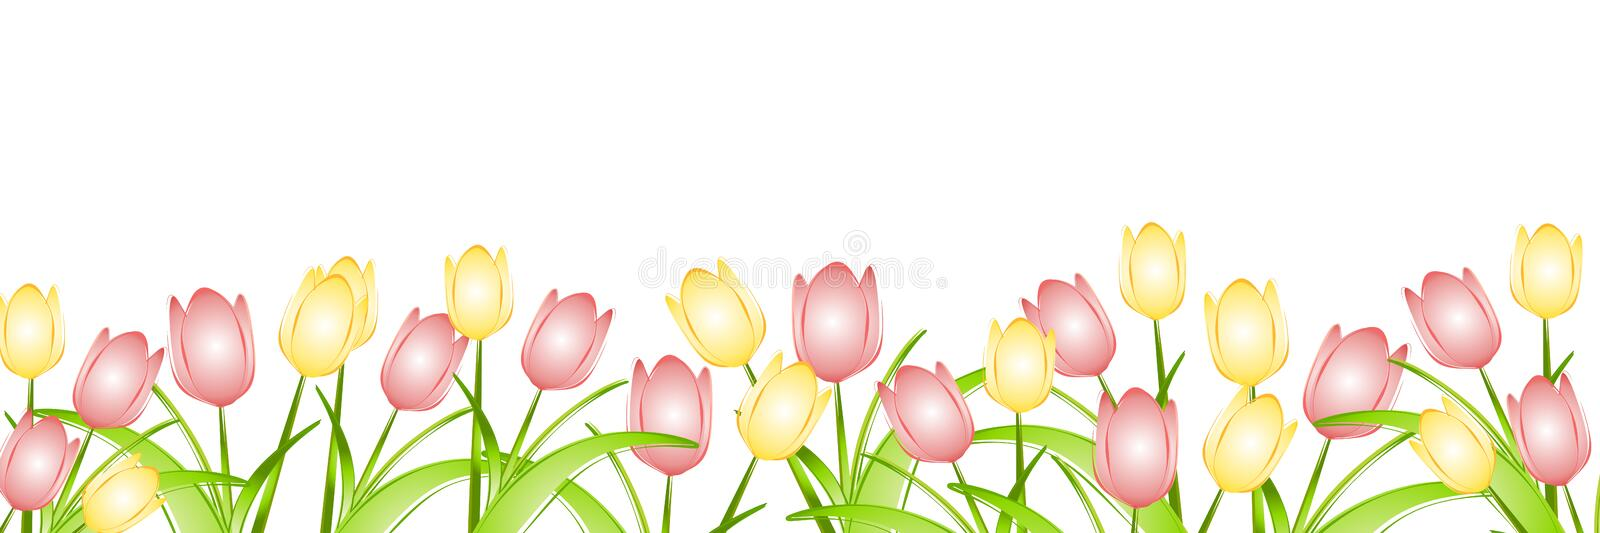 Row of Spring Tulips royalty free illustration